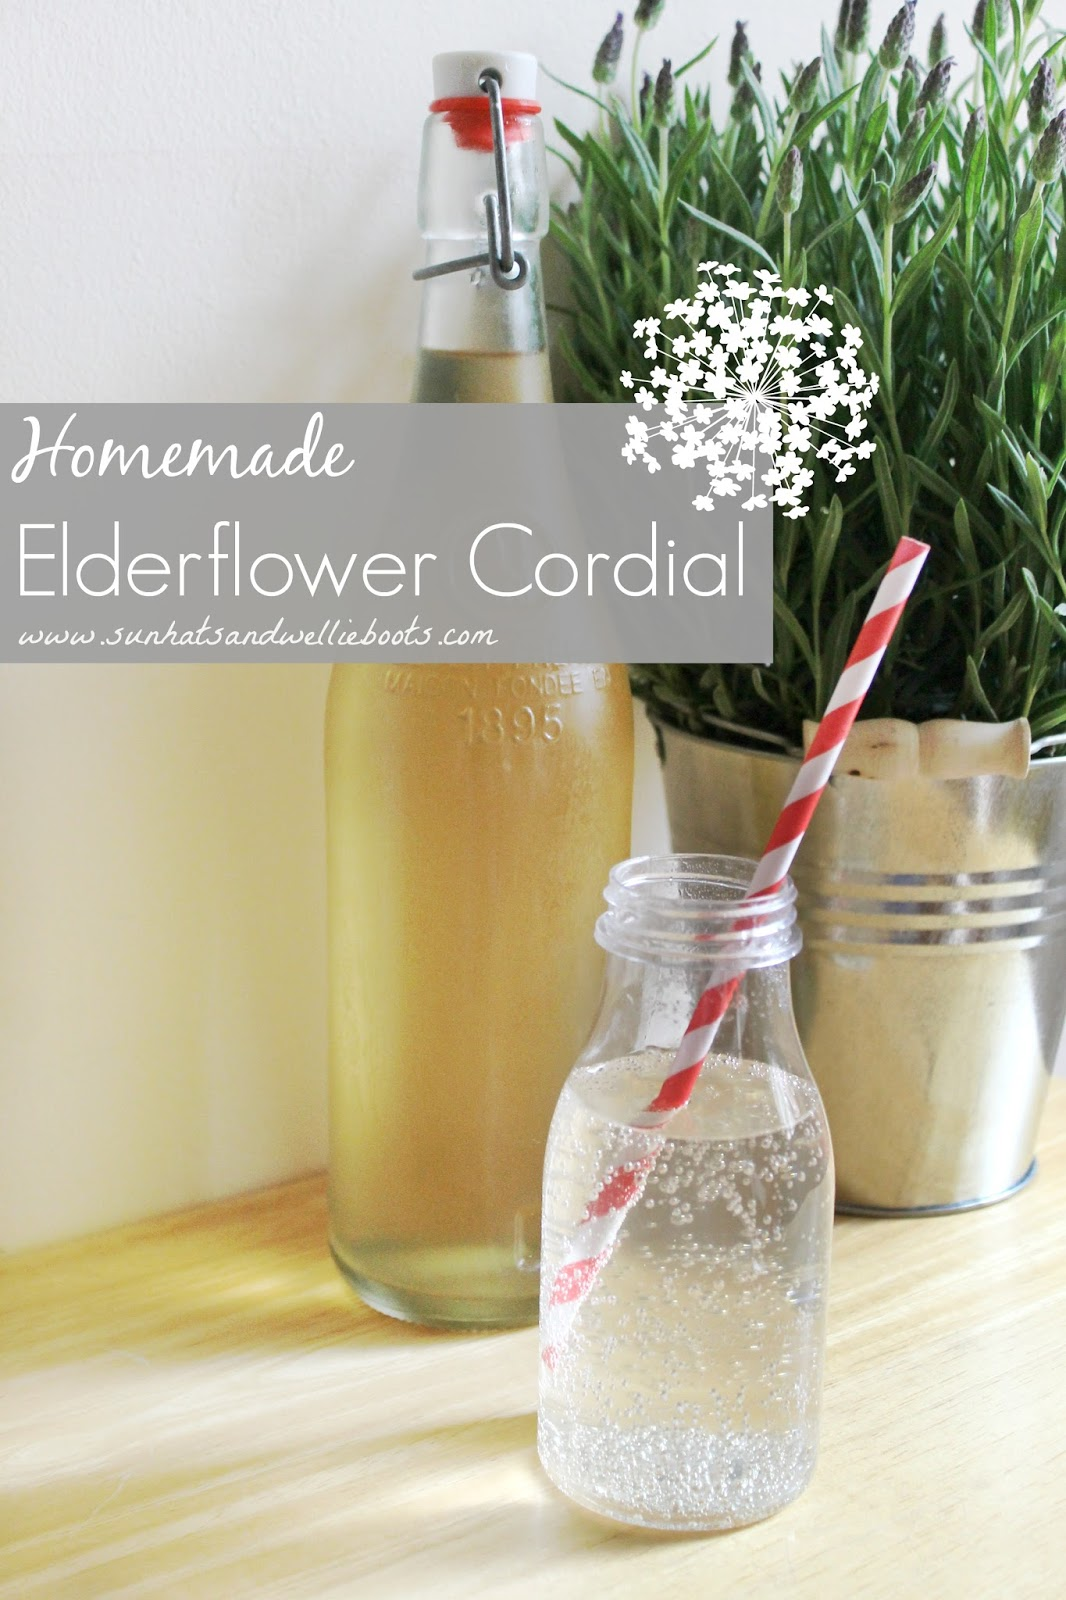 Sun Hats & Wellie Boots: Homemade Elderflower Cordial